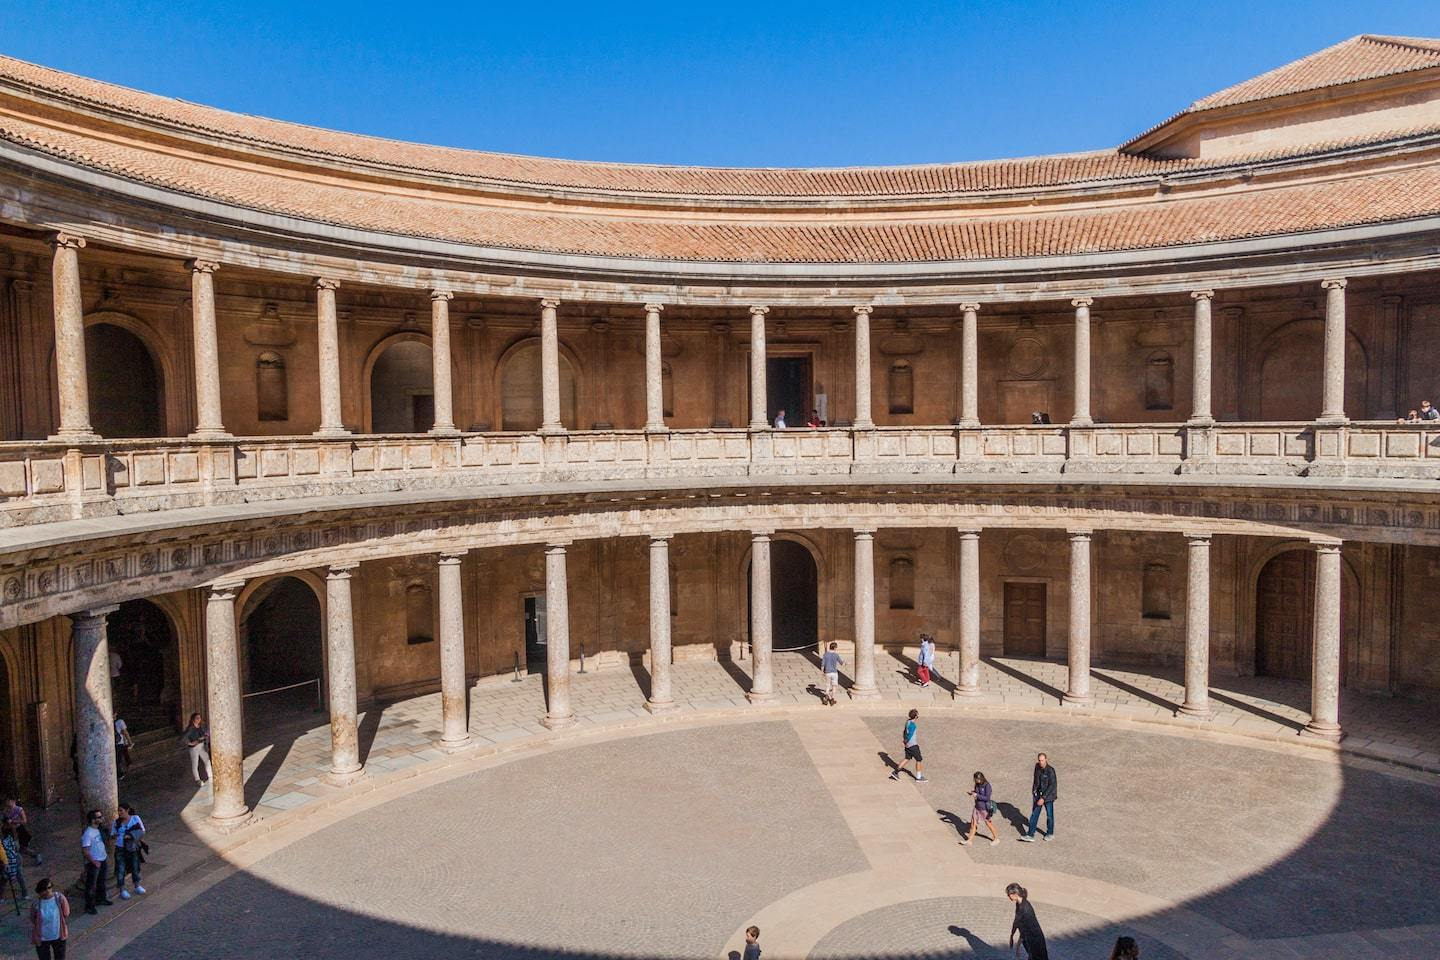 circular structure with pillars and openings around a central courtyard